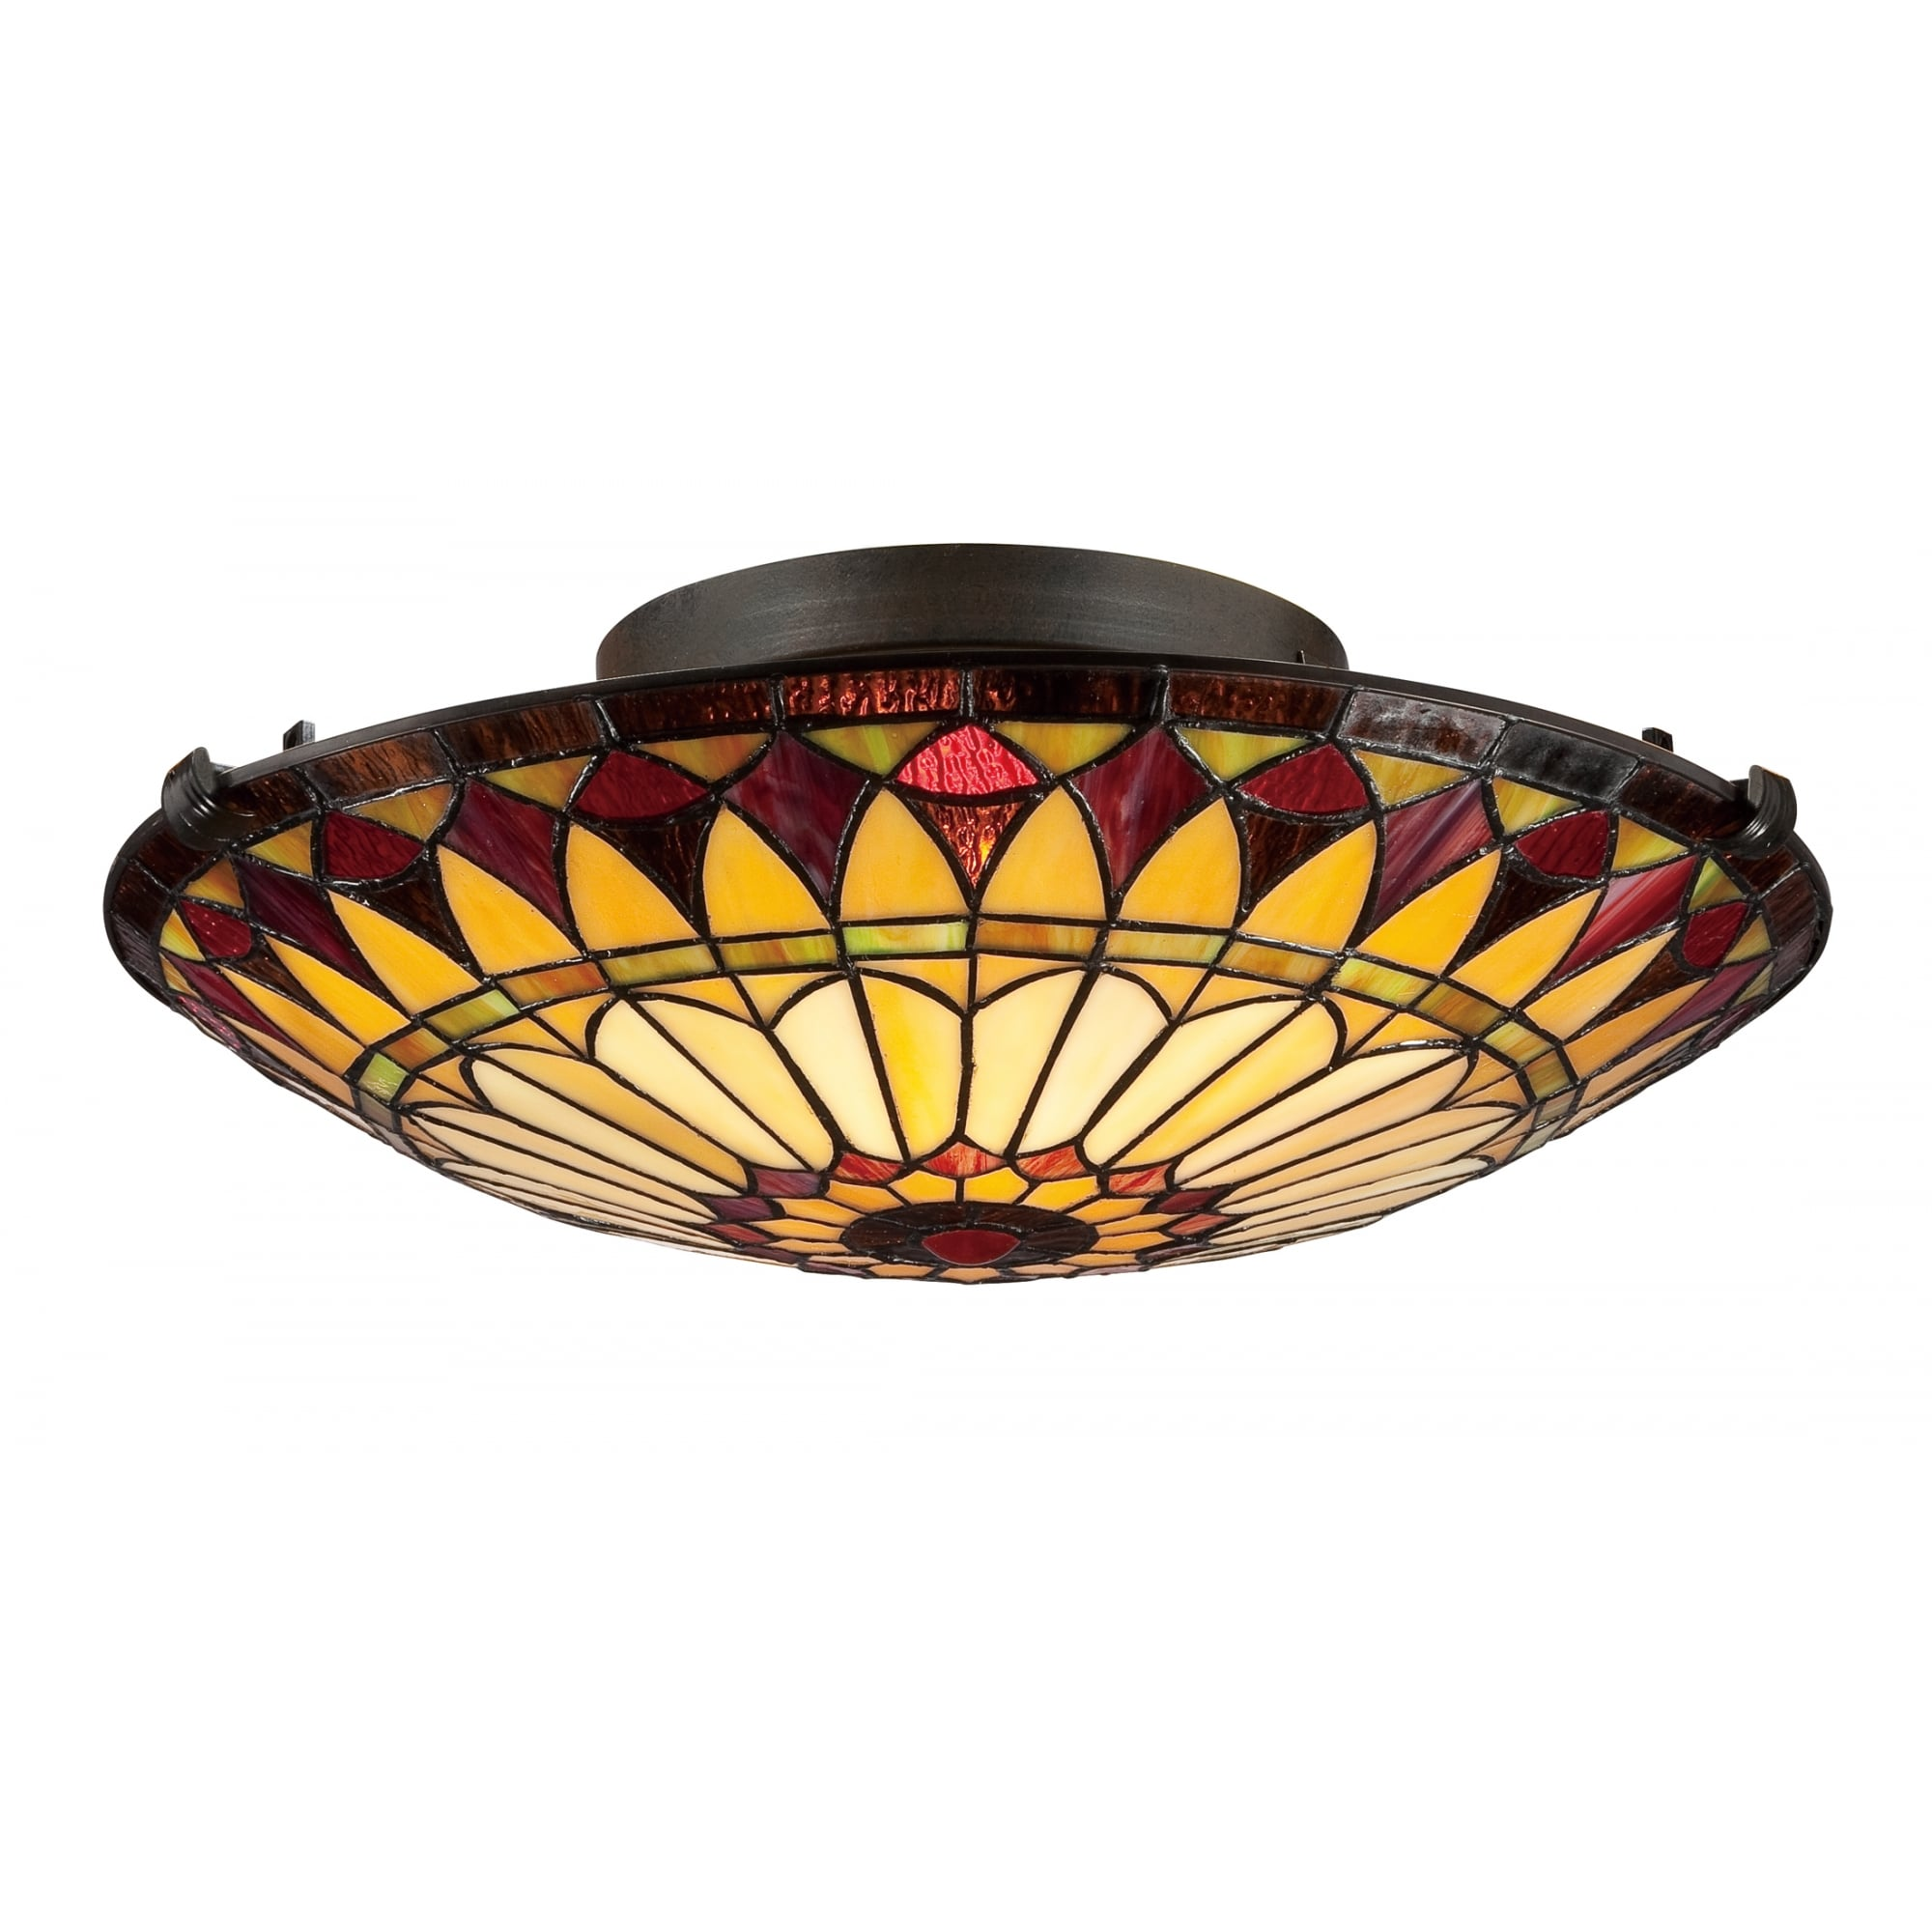 WEST END Tiffany style flush fit ceiling light